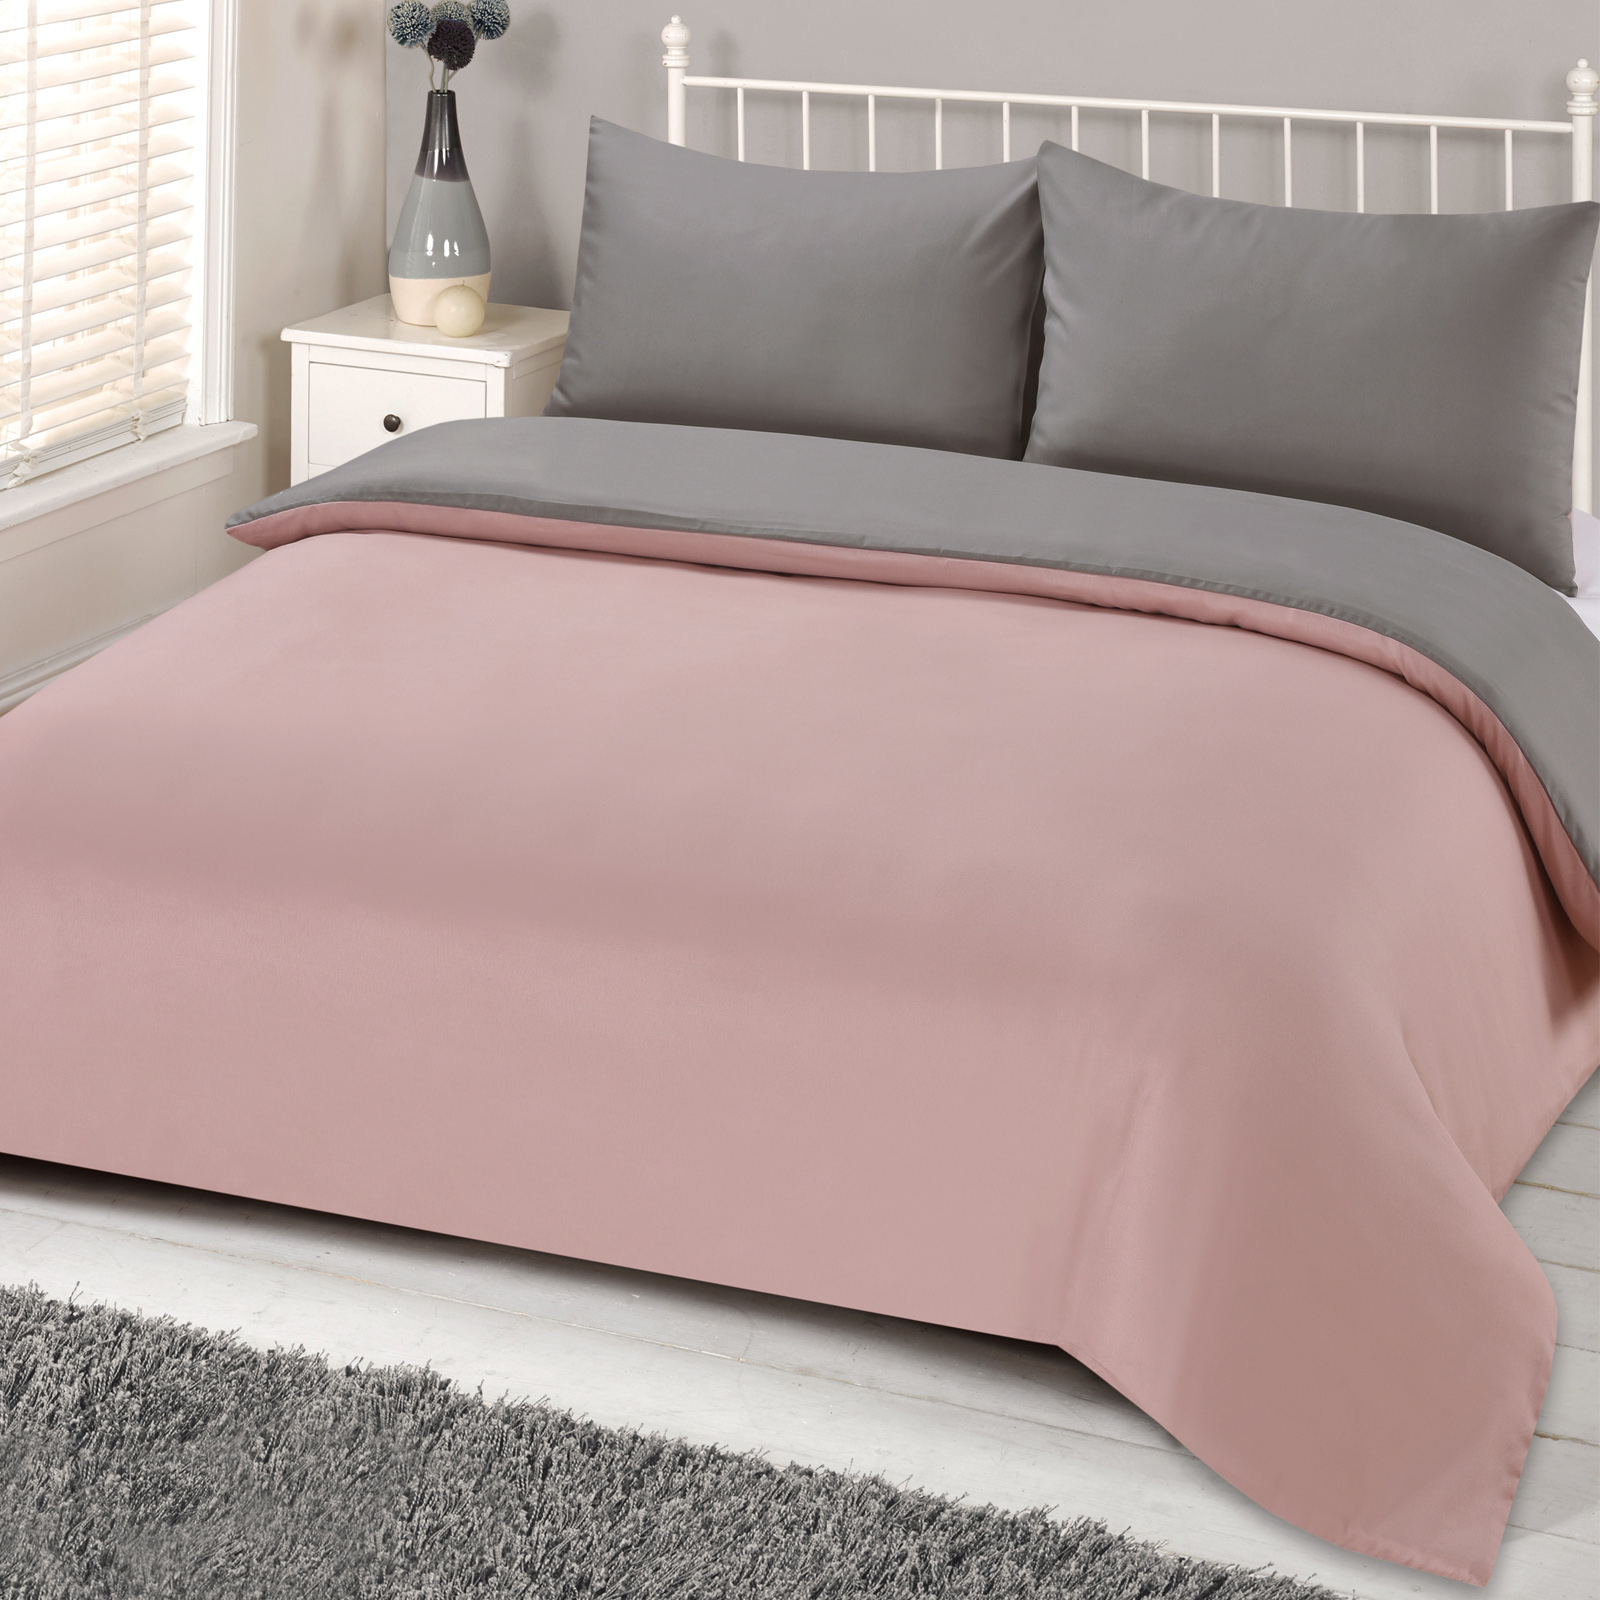 Brentfords Reversible Blush Grey Duvet Cover With Pillowcase Pink